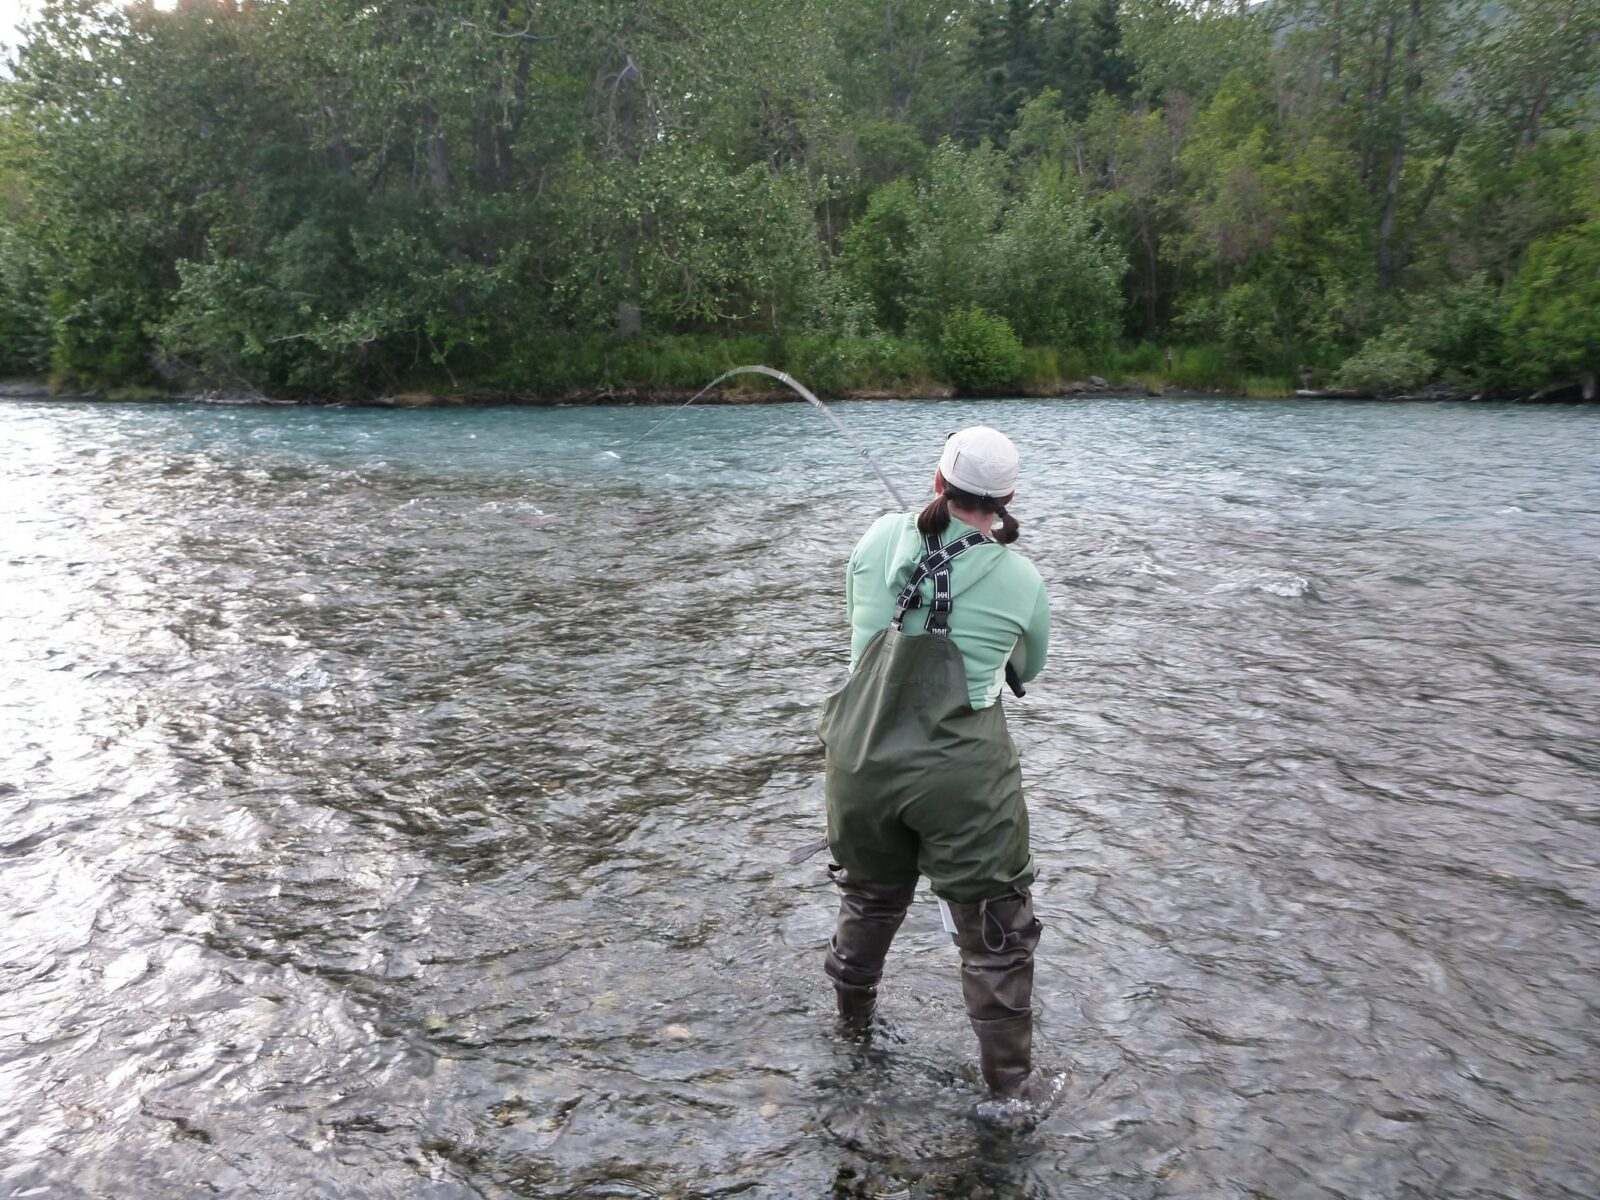 A woman fishing in a river with a hat, waterproof green overalls and brown hip waders